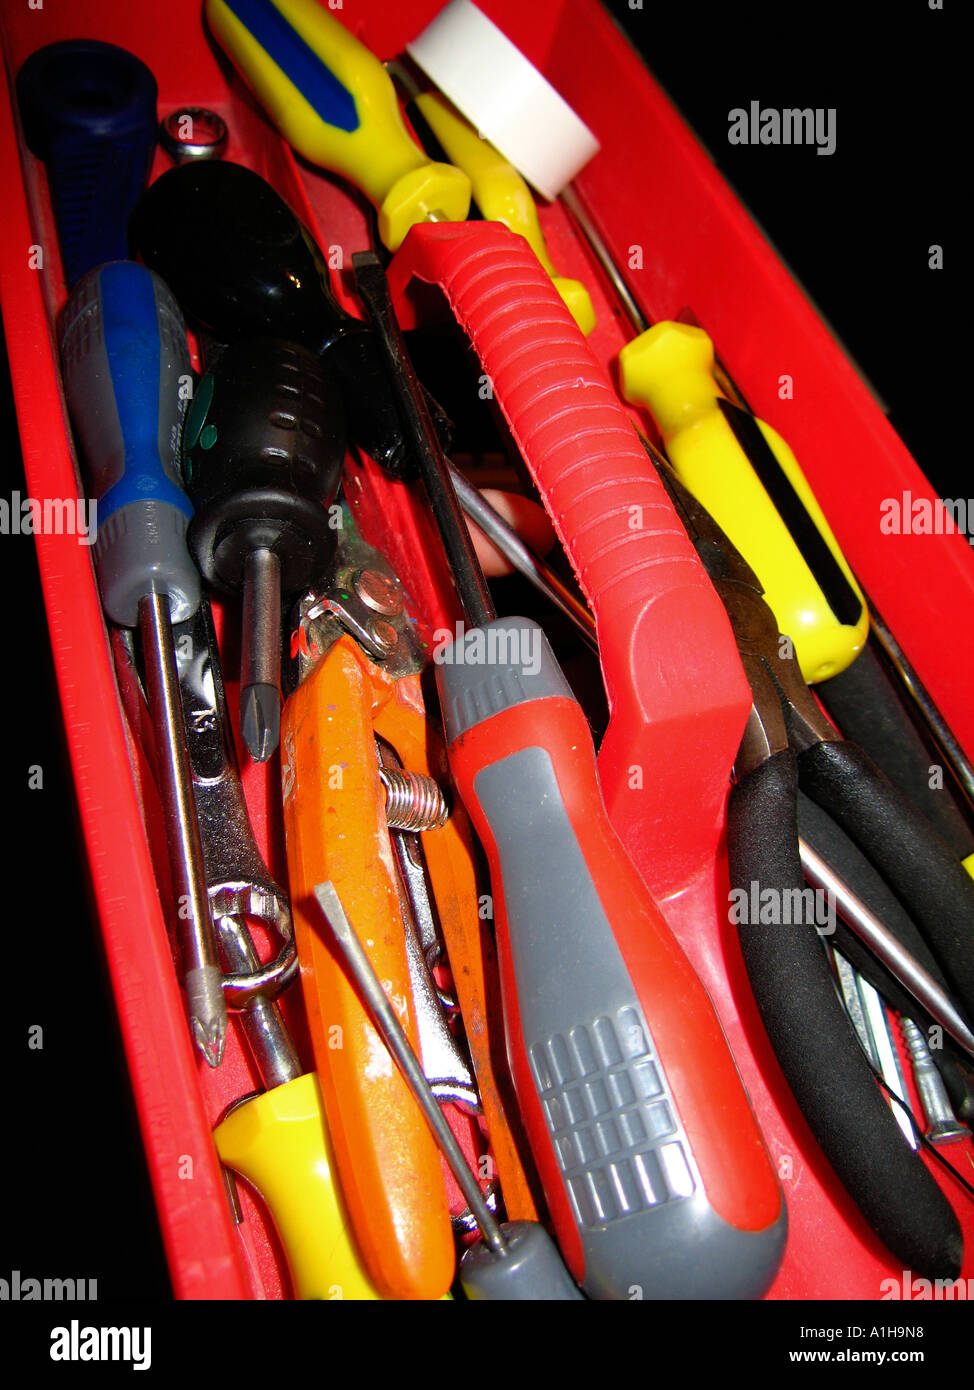 Domestic type DIY toolbox tray with tools Stock Photo